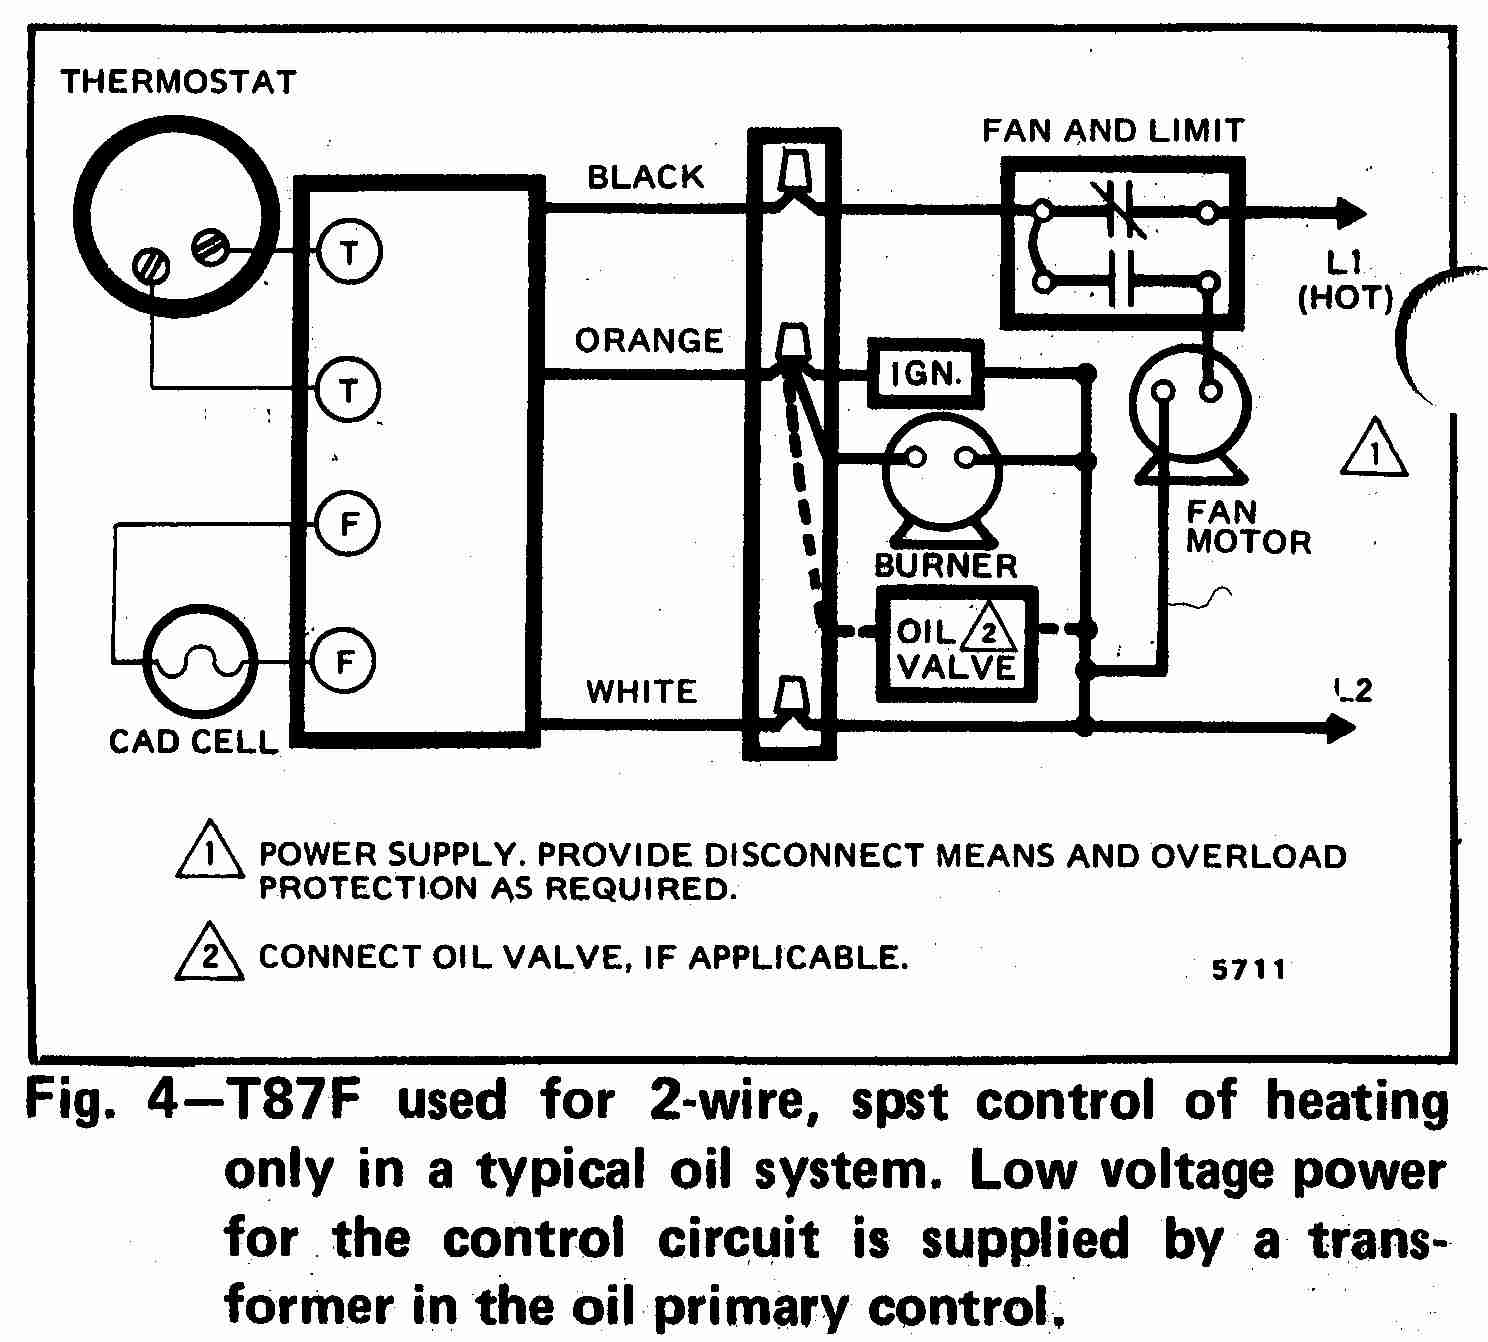 TT_T87F_0002_2W_DJF room thermostat wiring diagrams for hvac systems unit heater wiring diagram at creativeand.co